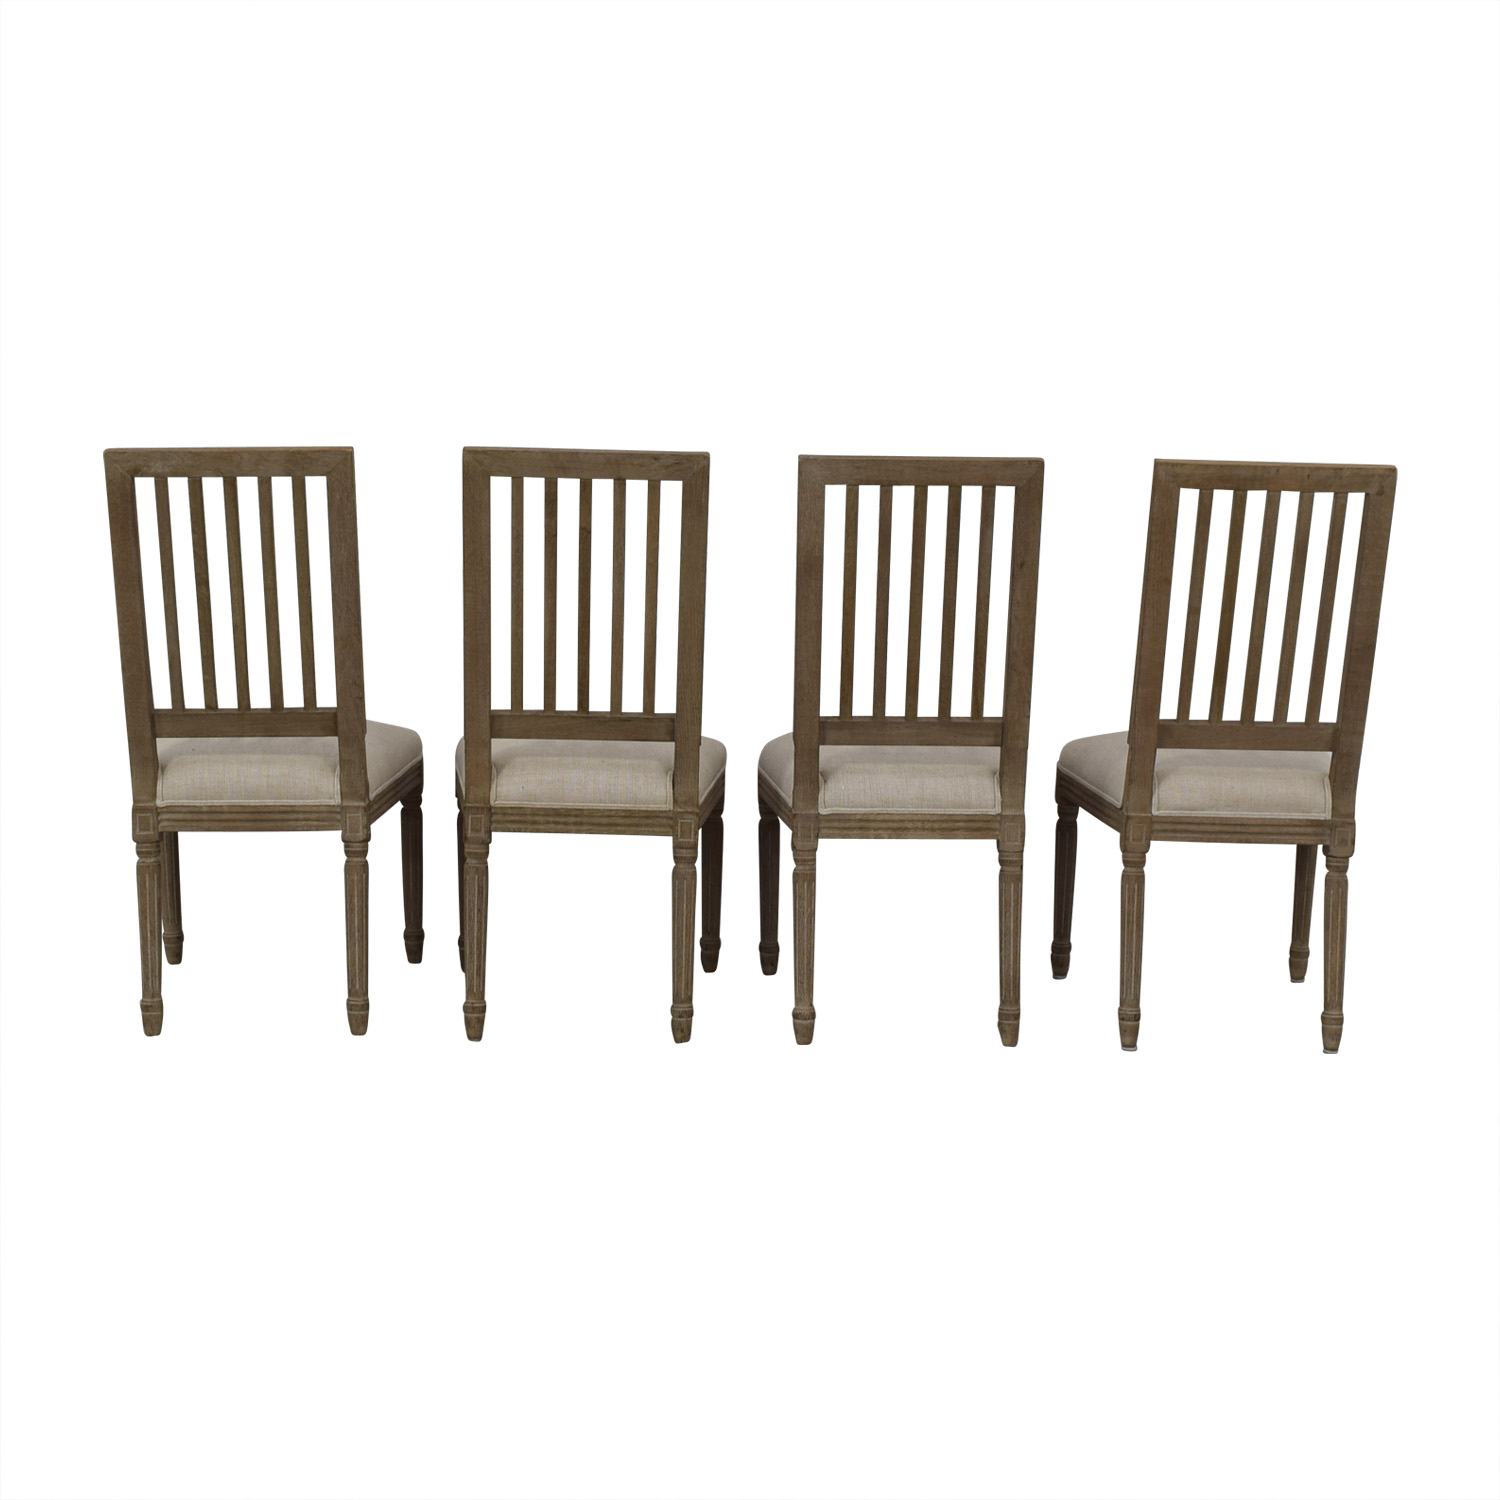 Restoration Hardware Restoration Hardware Spindle Back Dining Chairs nj